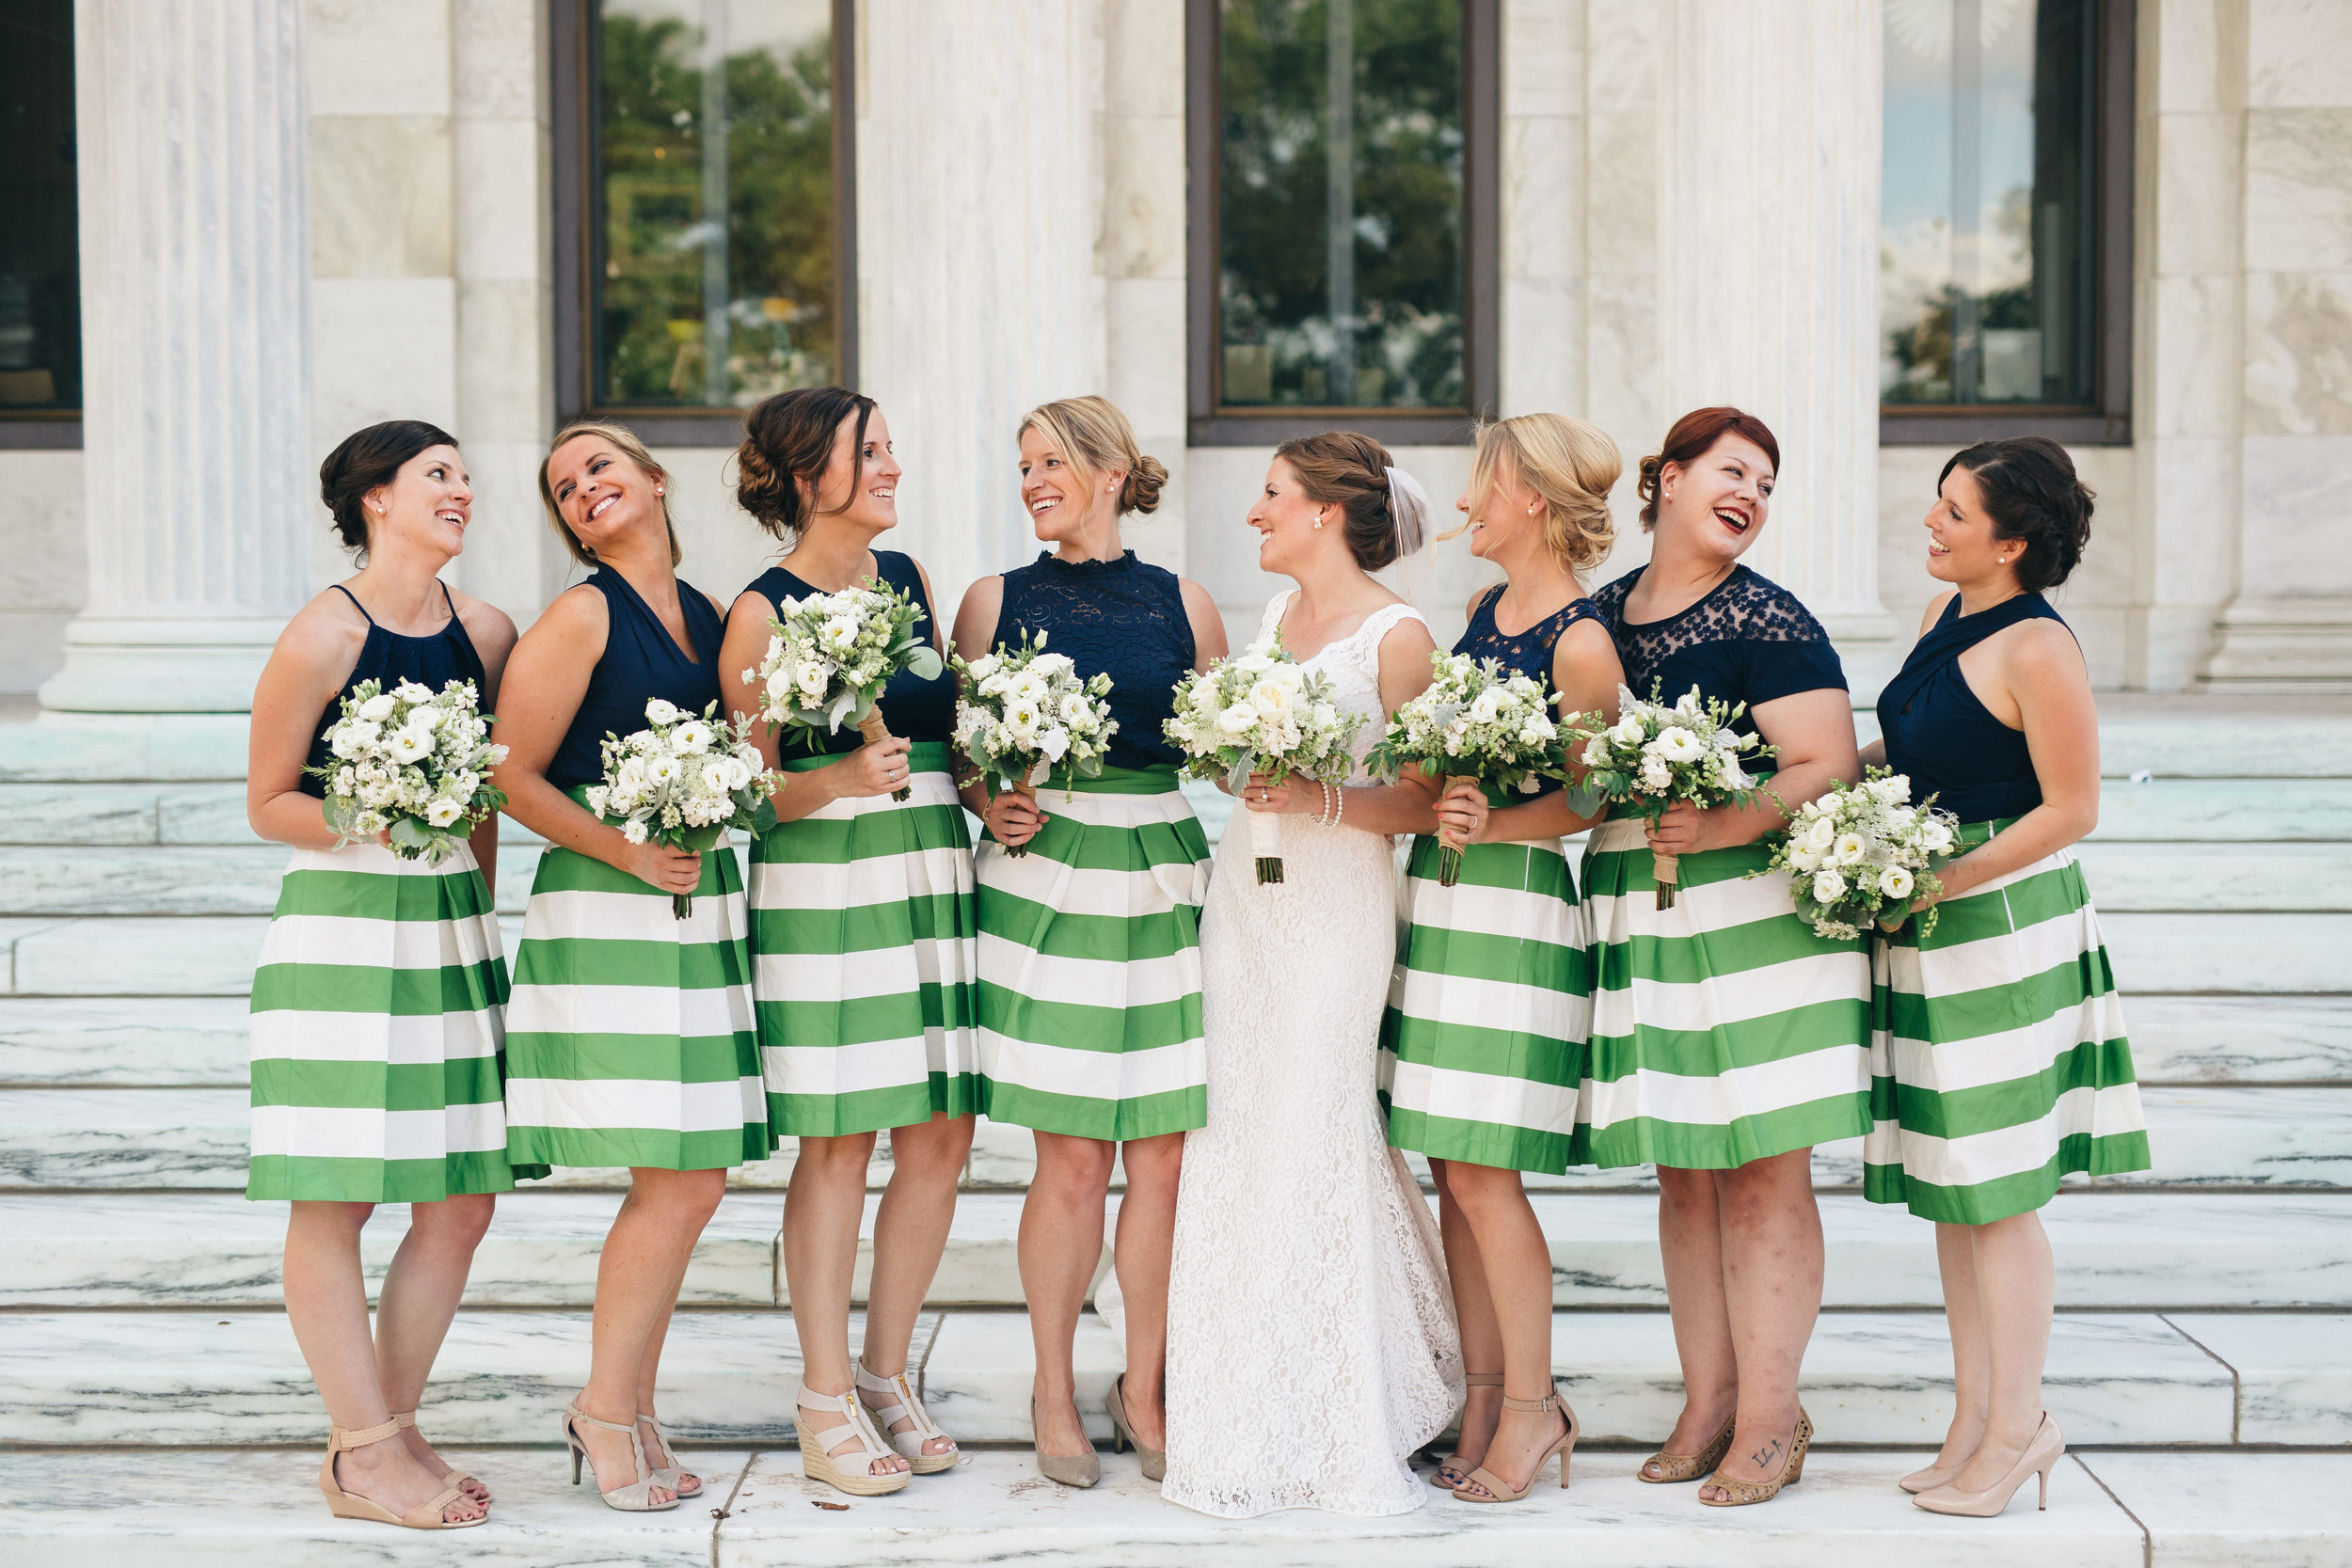 Gorgeous bridesmaid in kelly green striped skirts and navy blue tops.